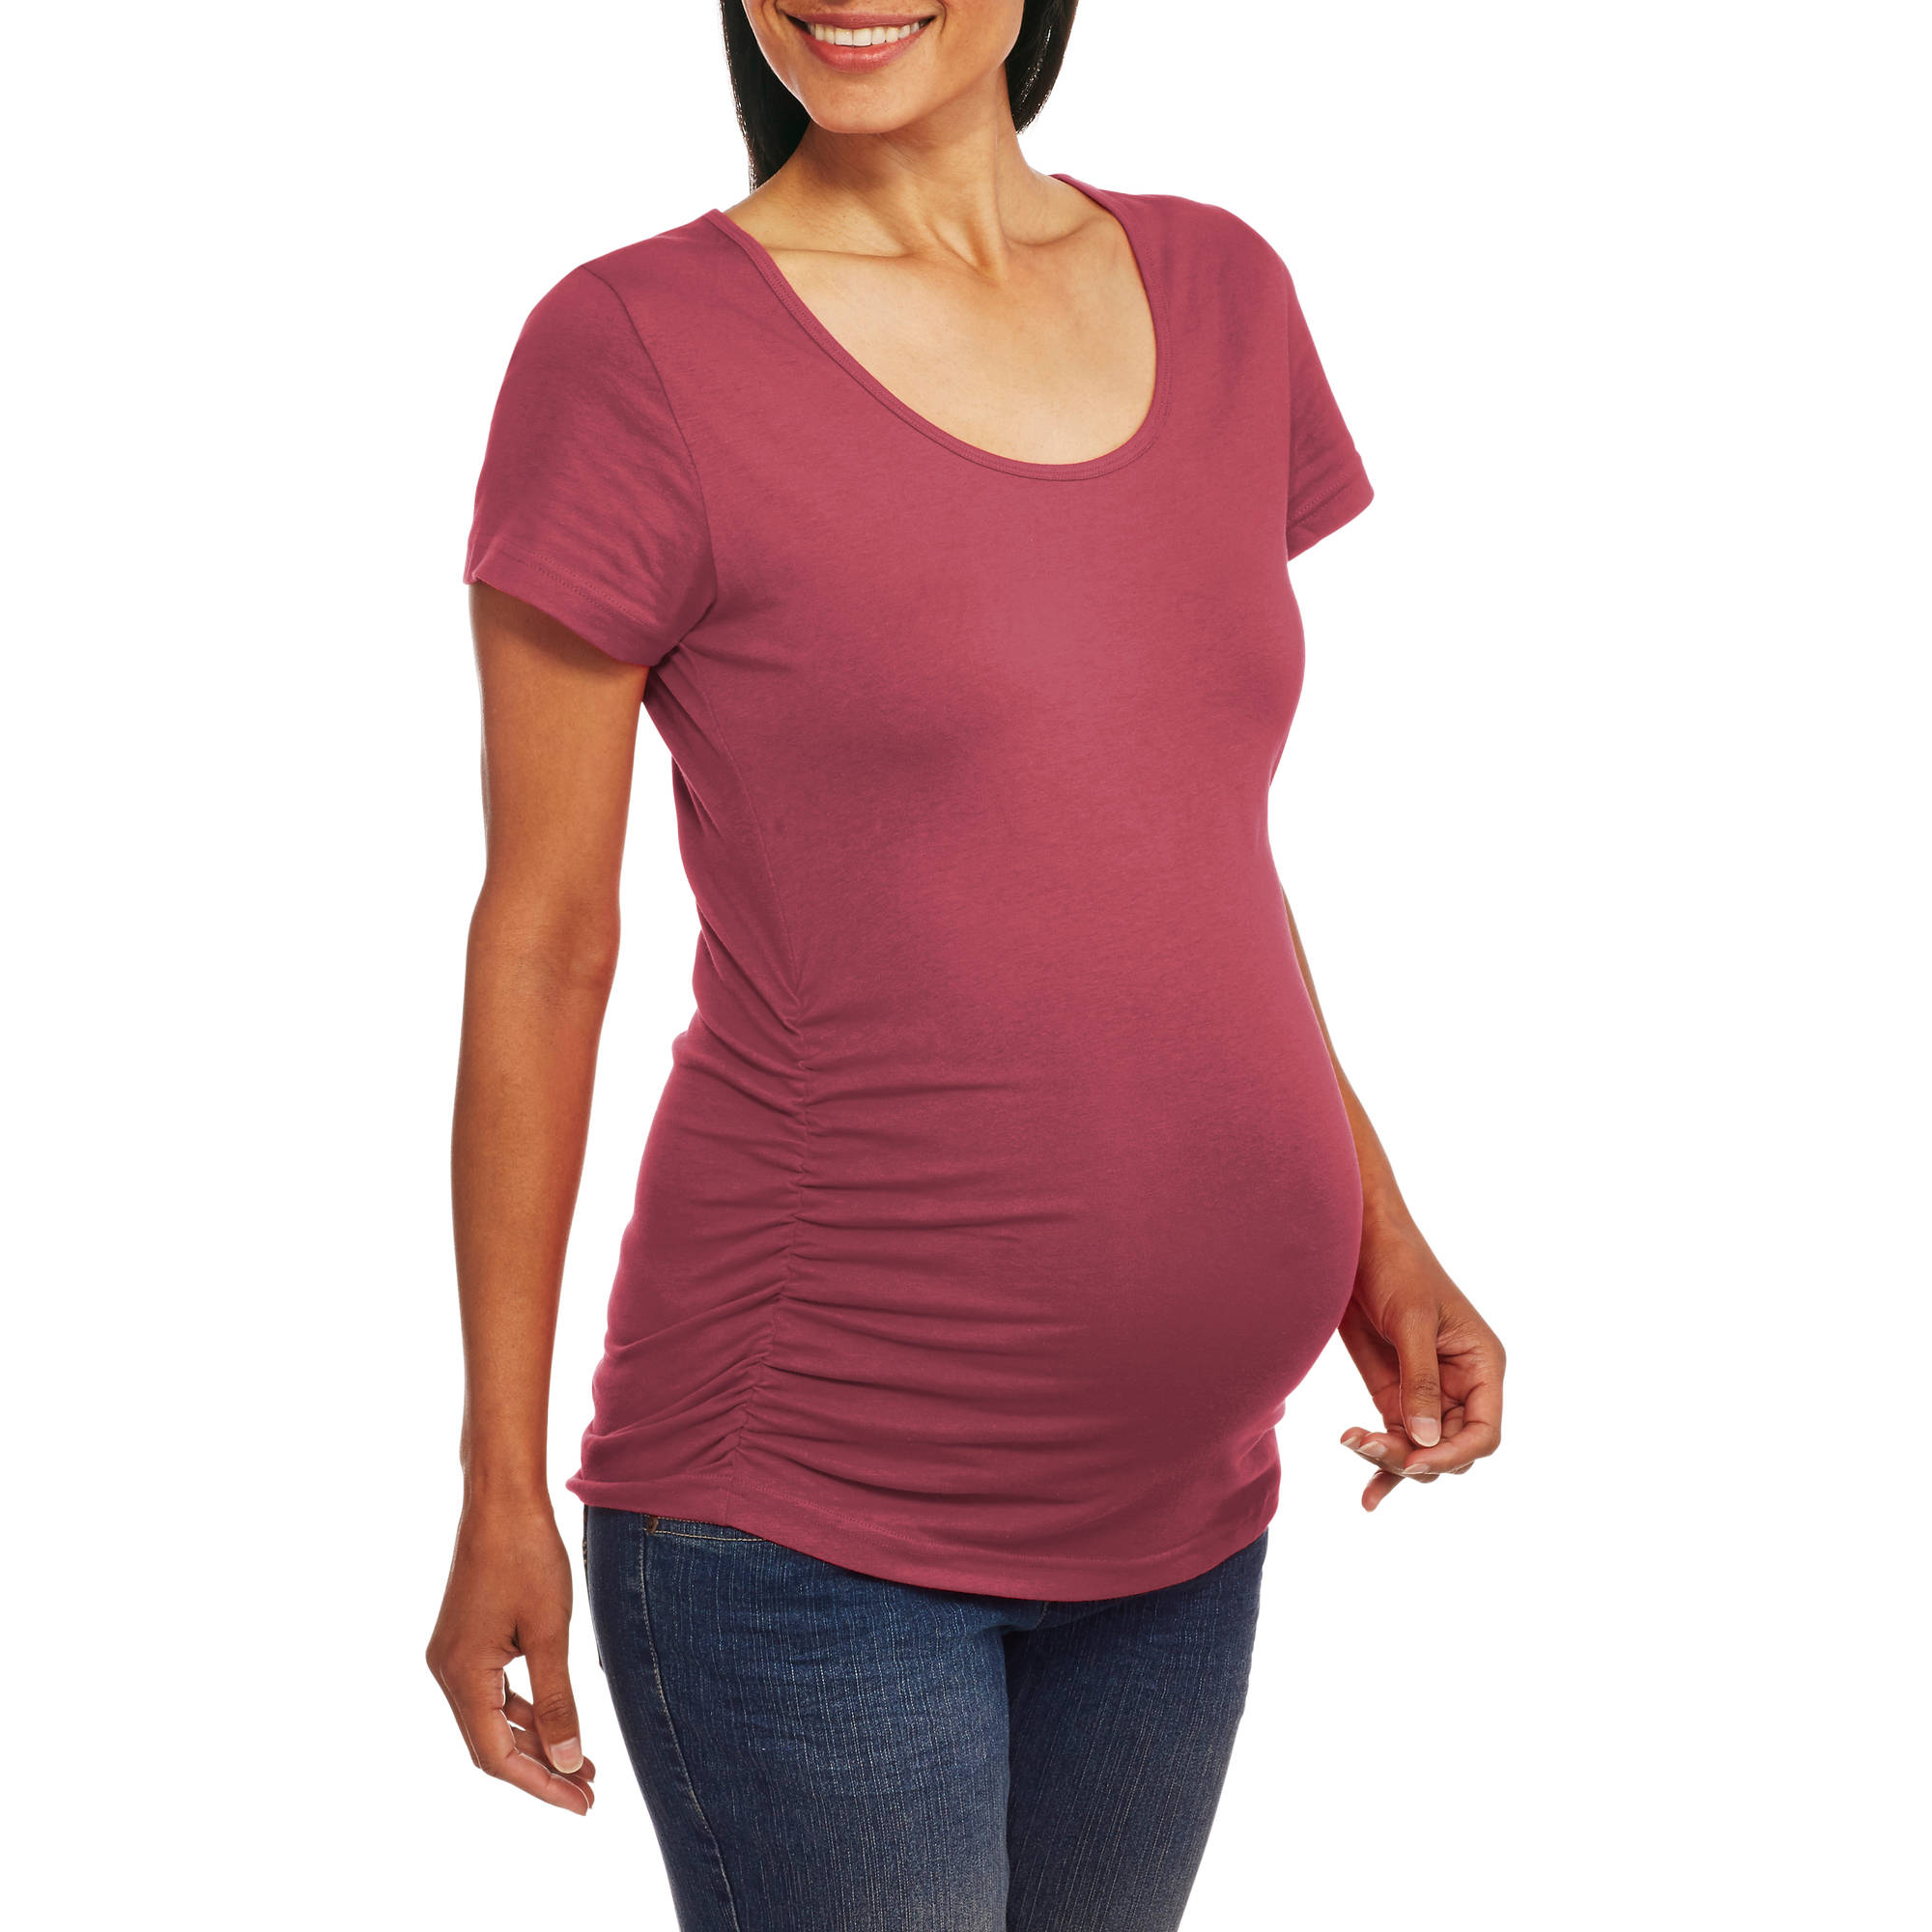 Oh! Mamma Maternity Short Sleeve Tee With Flattering Side Ruching--Available in Plus Size